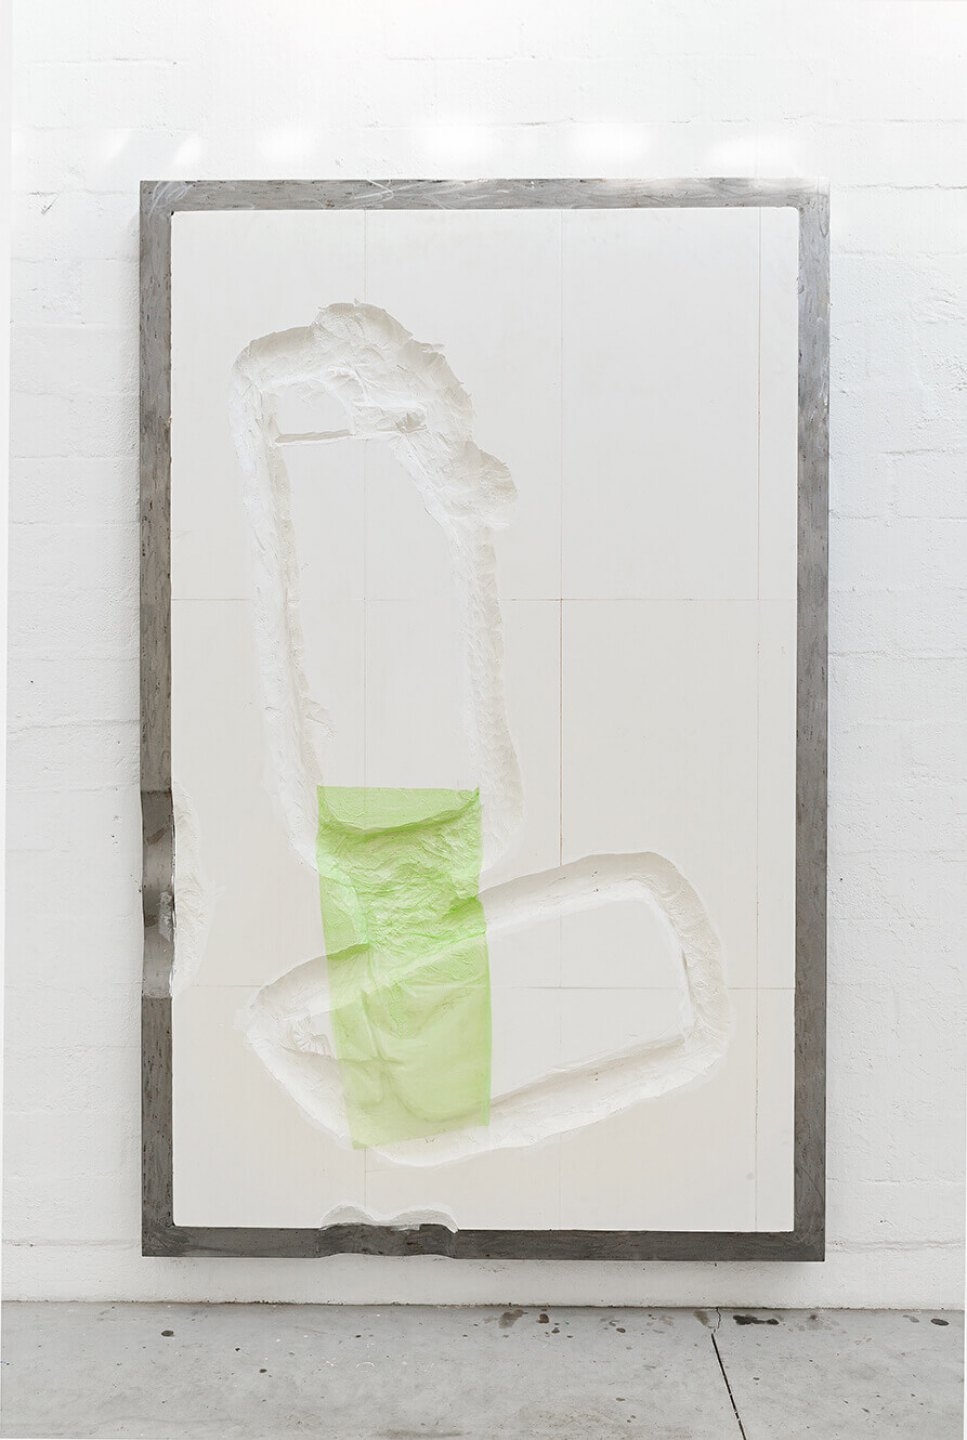 Neïl Beloufa, <em>Green lighters, from Failed vintage attempt series</em>, 2014, MDF and metal, 330 × 210 × 13 cm - Mendes Wood DM